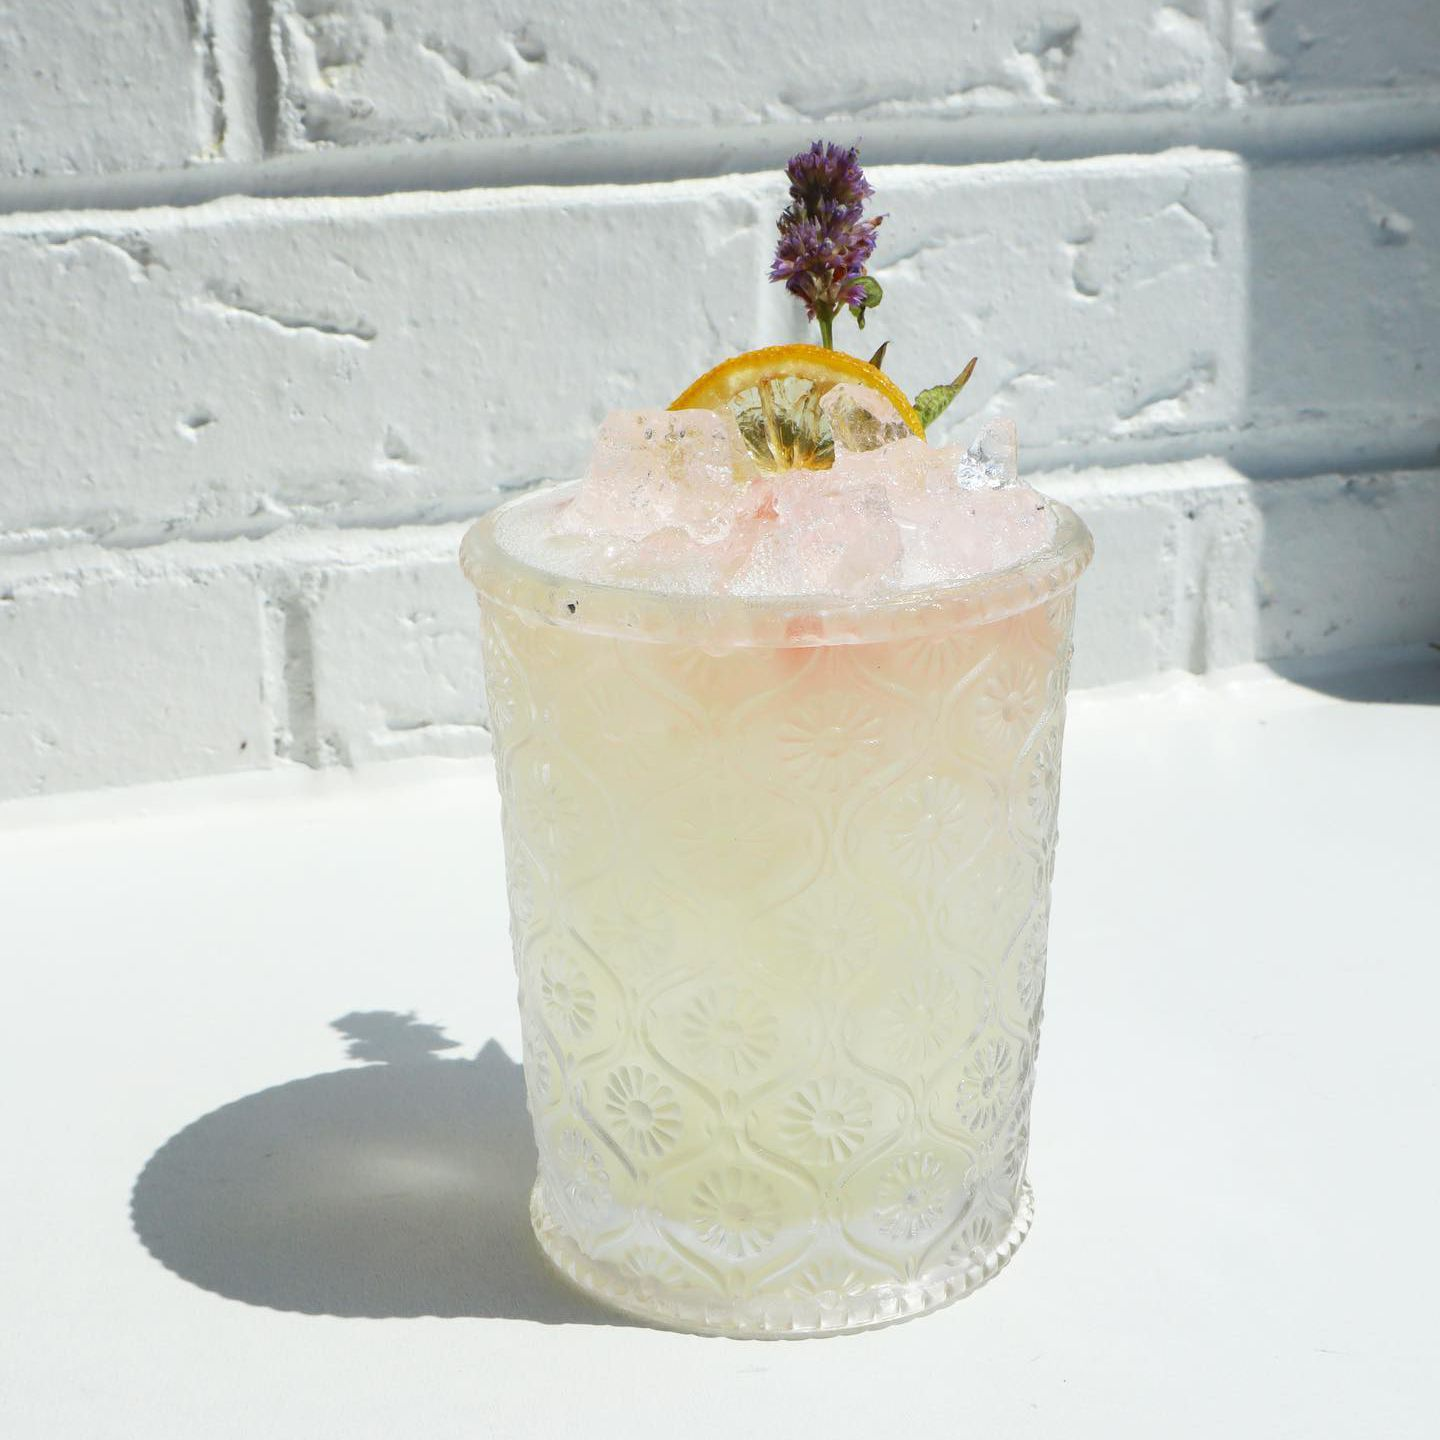 A summer sherry cocktail from Brenner Pass